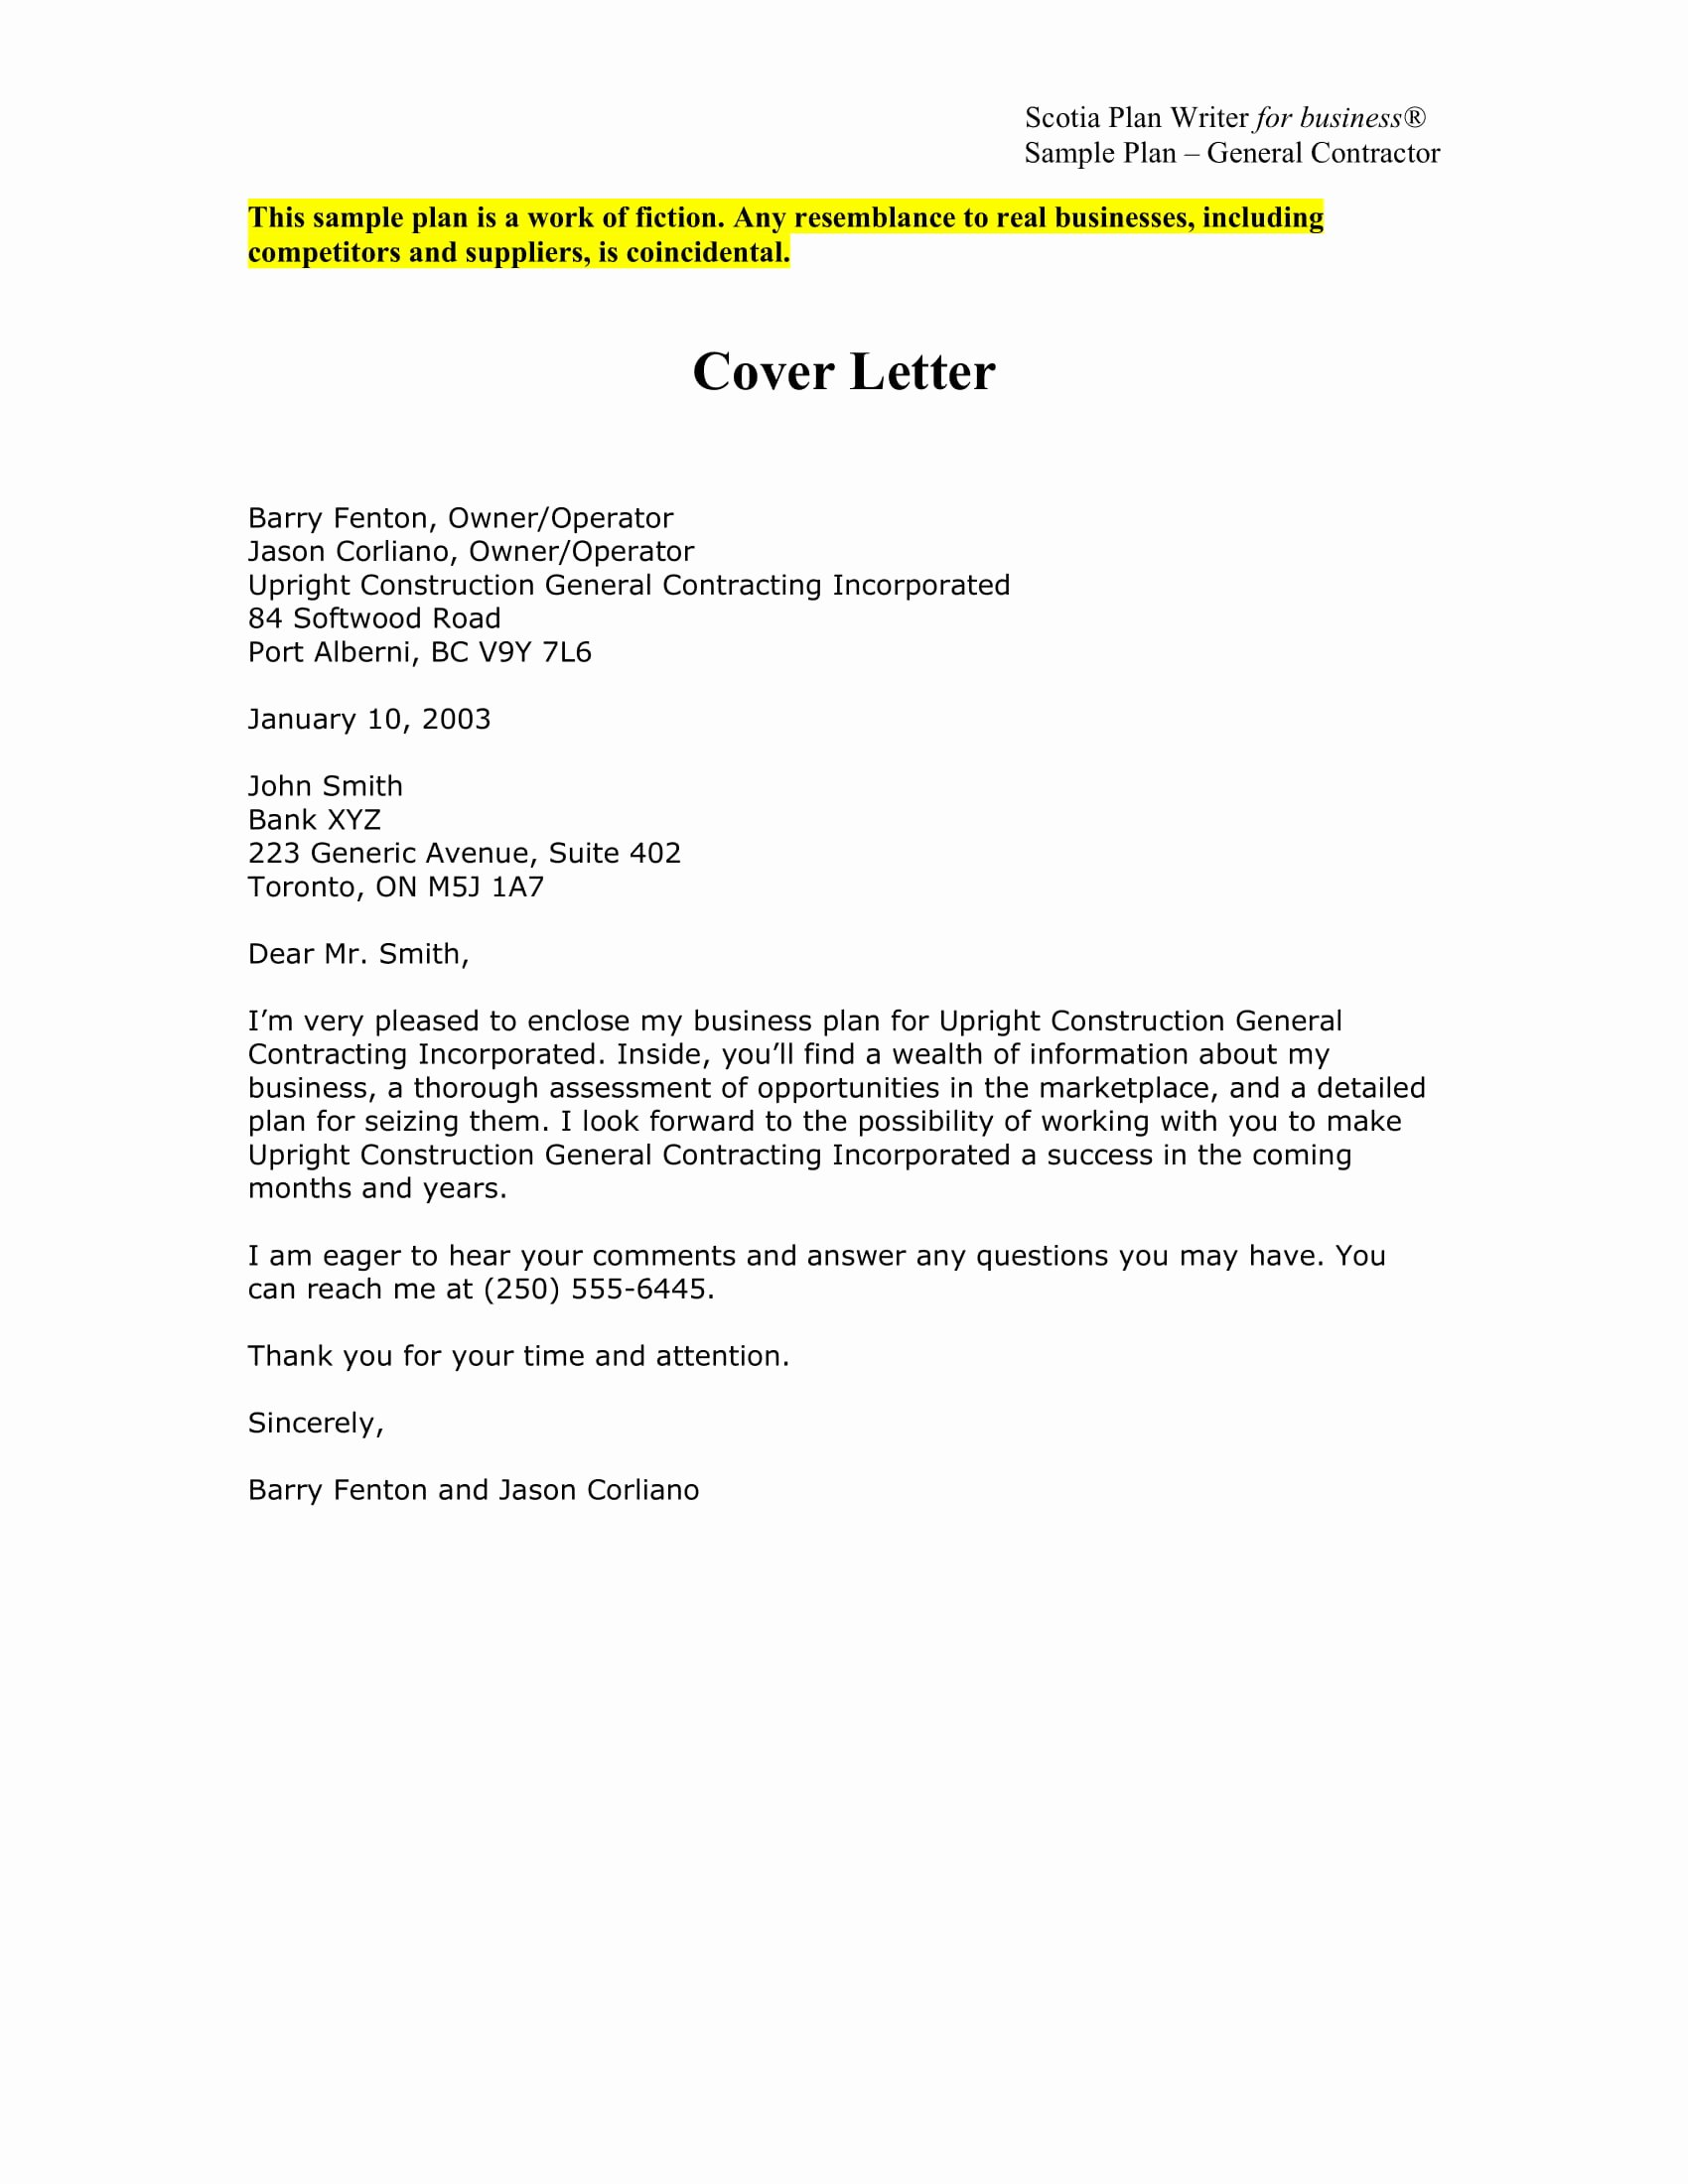 Sample Proposal Cover Letter Awesome Business Proposal Cover Letter Examples Pdf